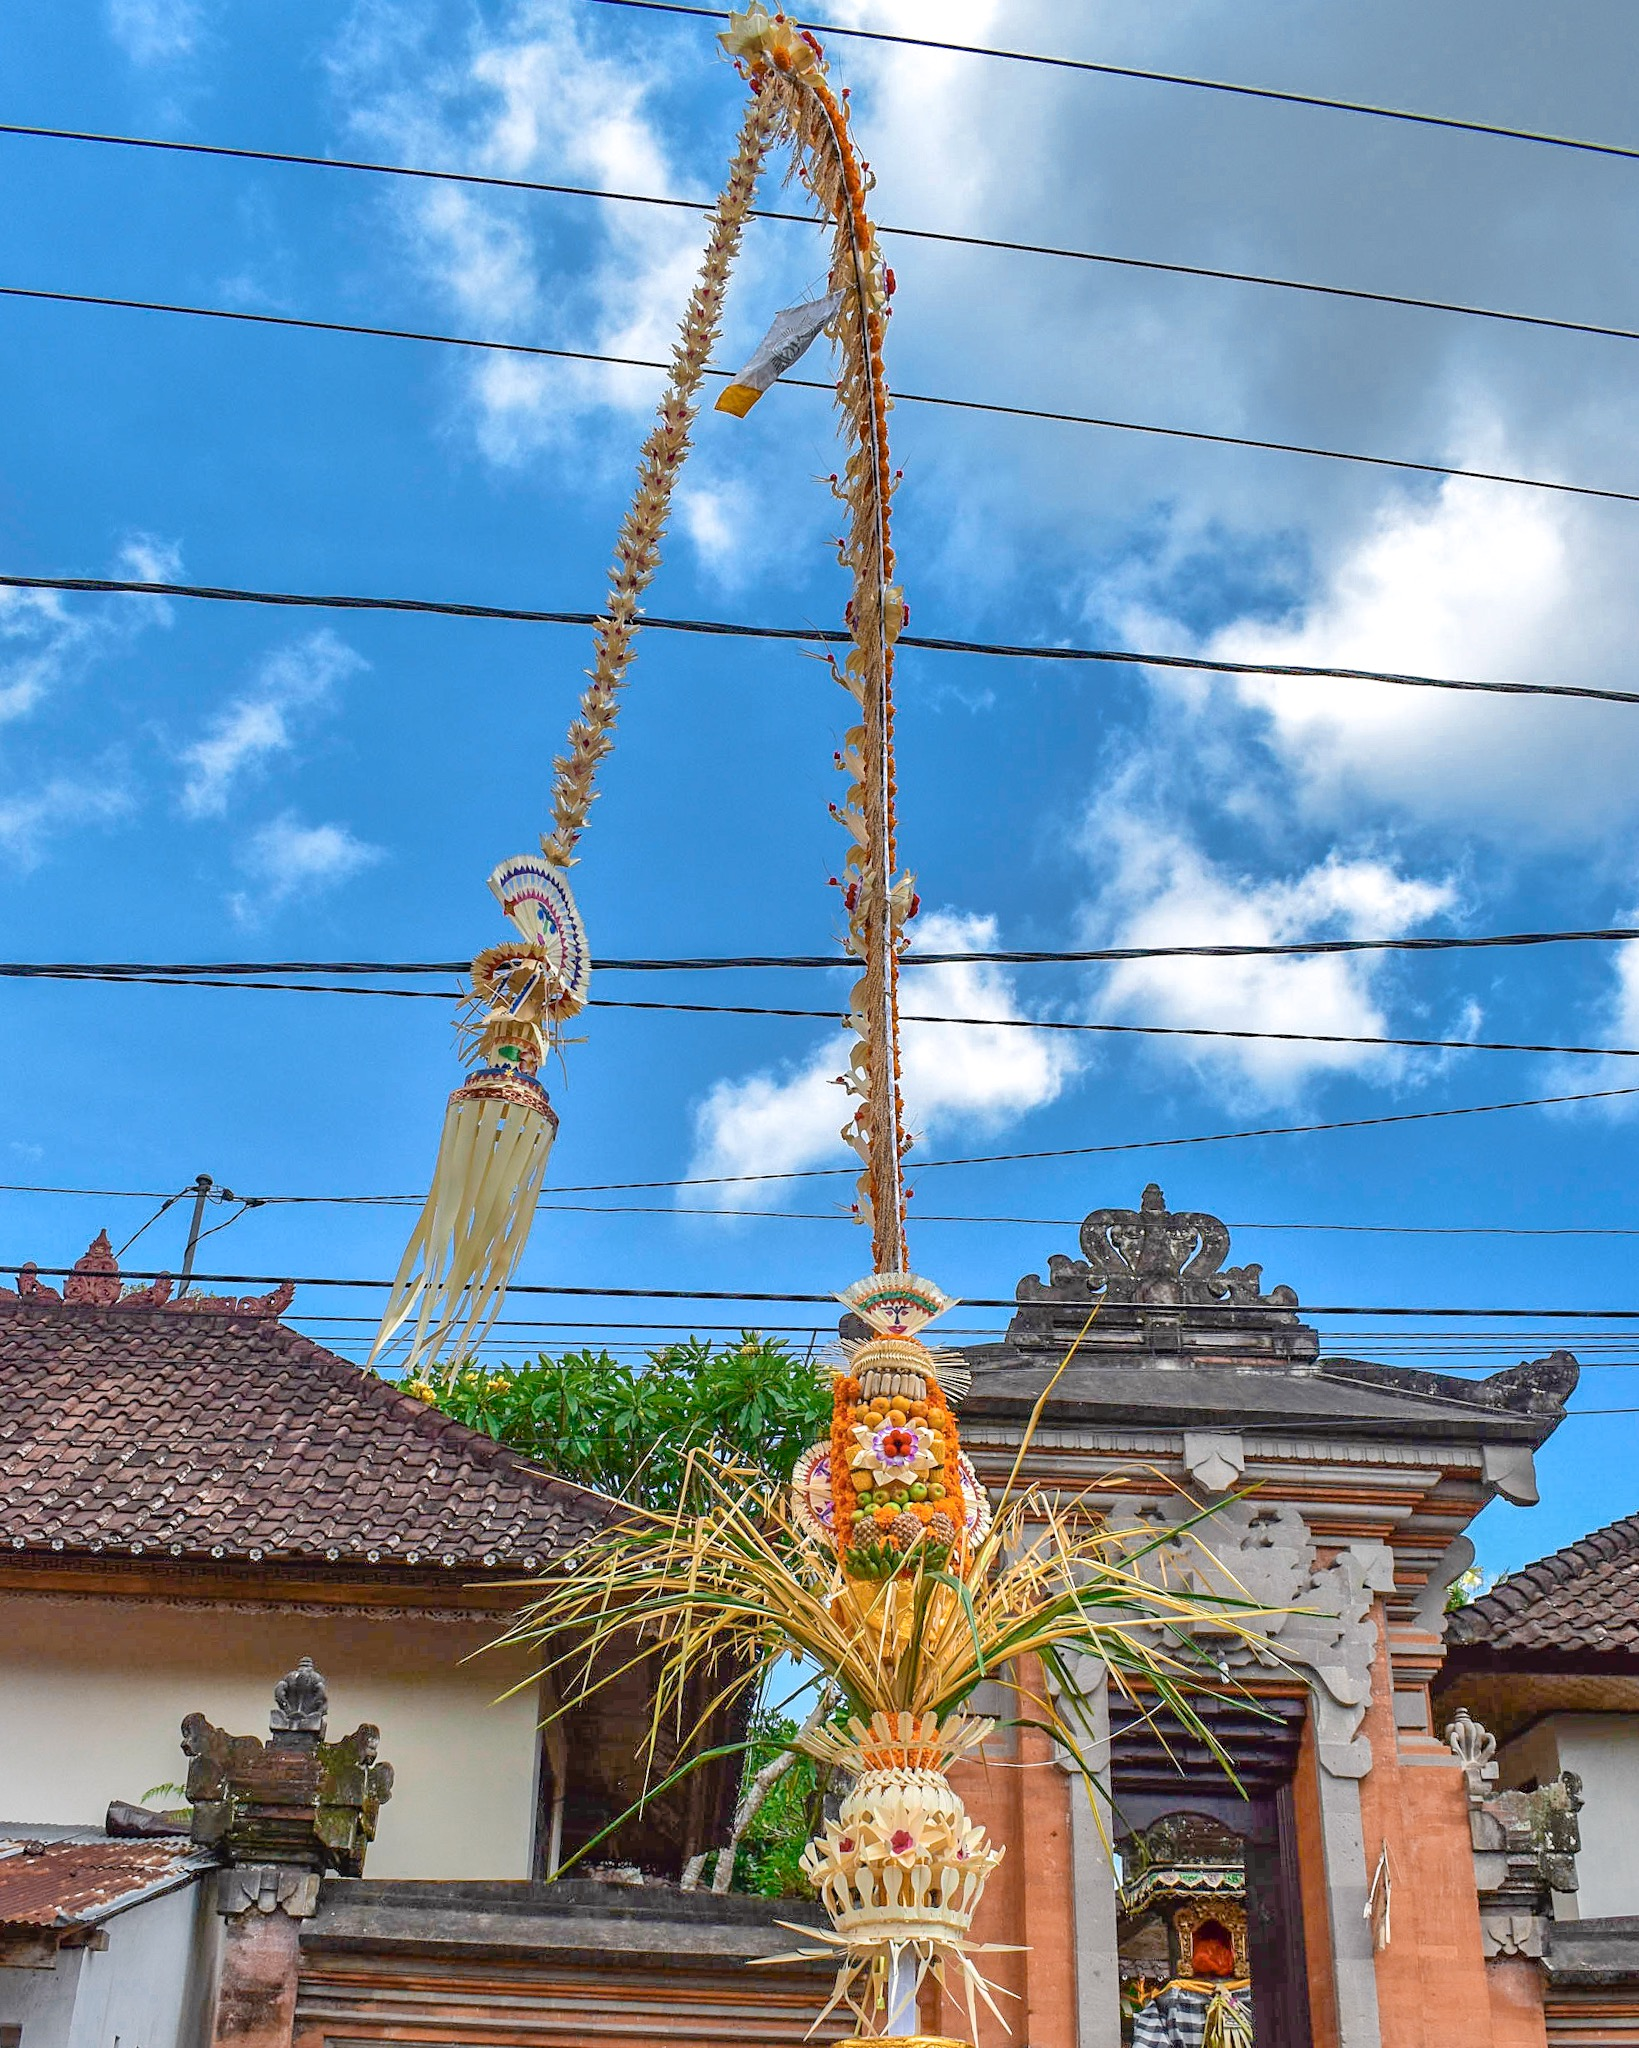 Galungan Day Decorations in Bali